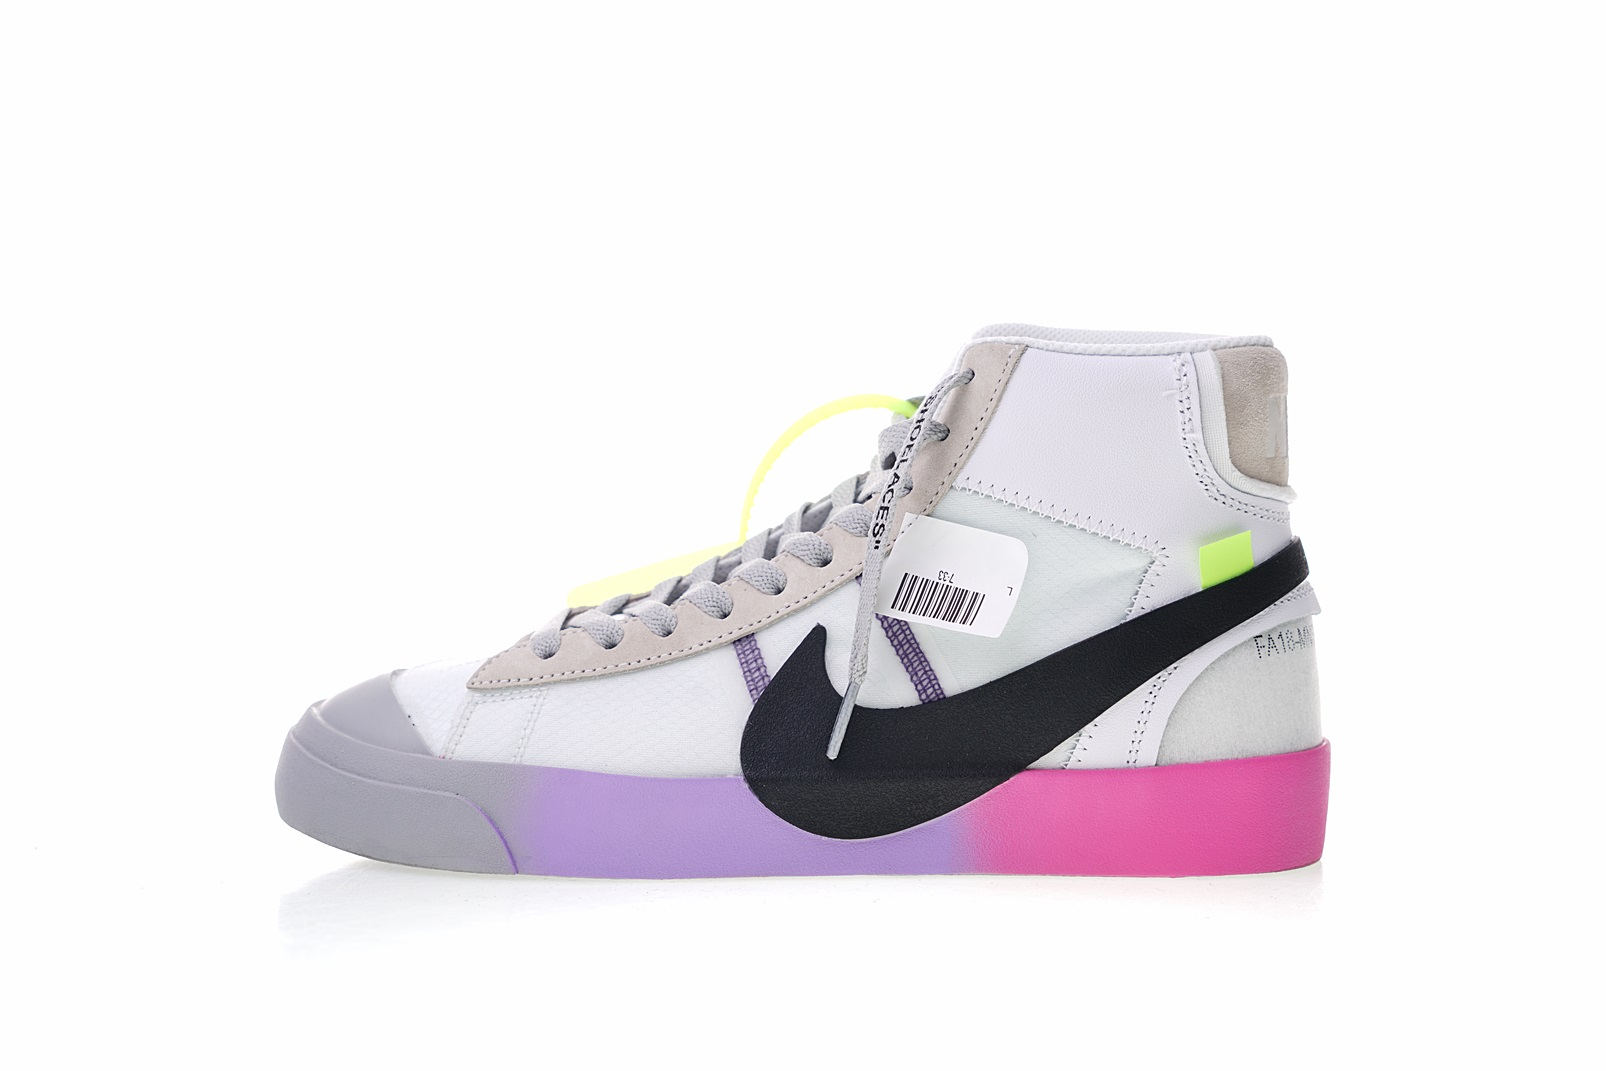 Serena Williams x OFF-WHITE x Blazer Mid 'Queen' AA3832 002